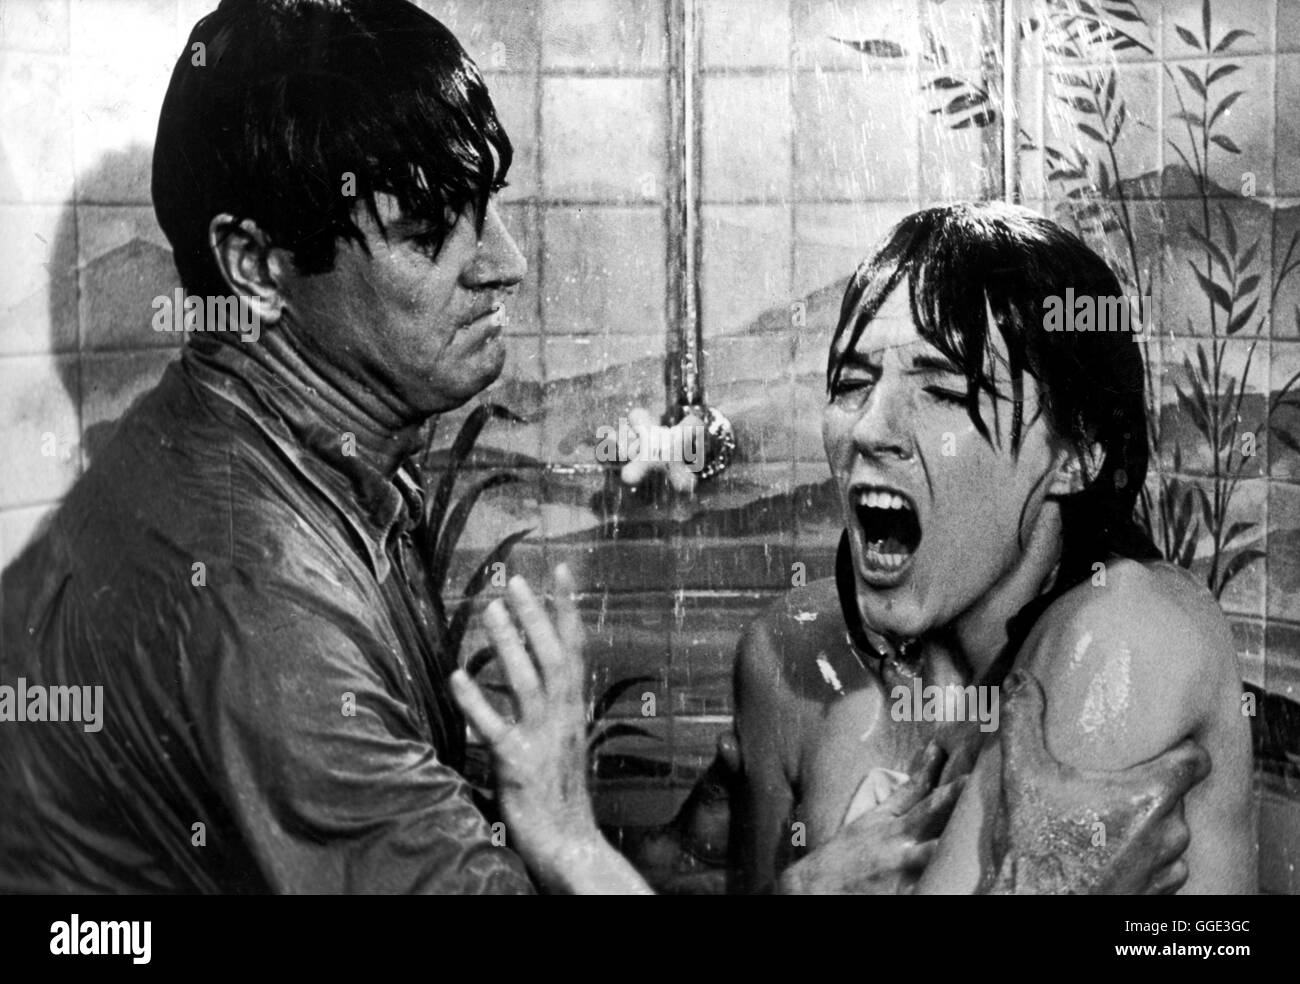 DARLING LILI / Darling Lili USA 1969 / Blake Edwards ROCK HUDSON (Major Larrabee) und JULIE ANDREWS (Lili Smith) - Stock Image